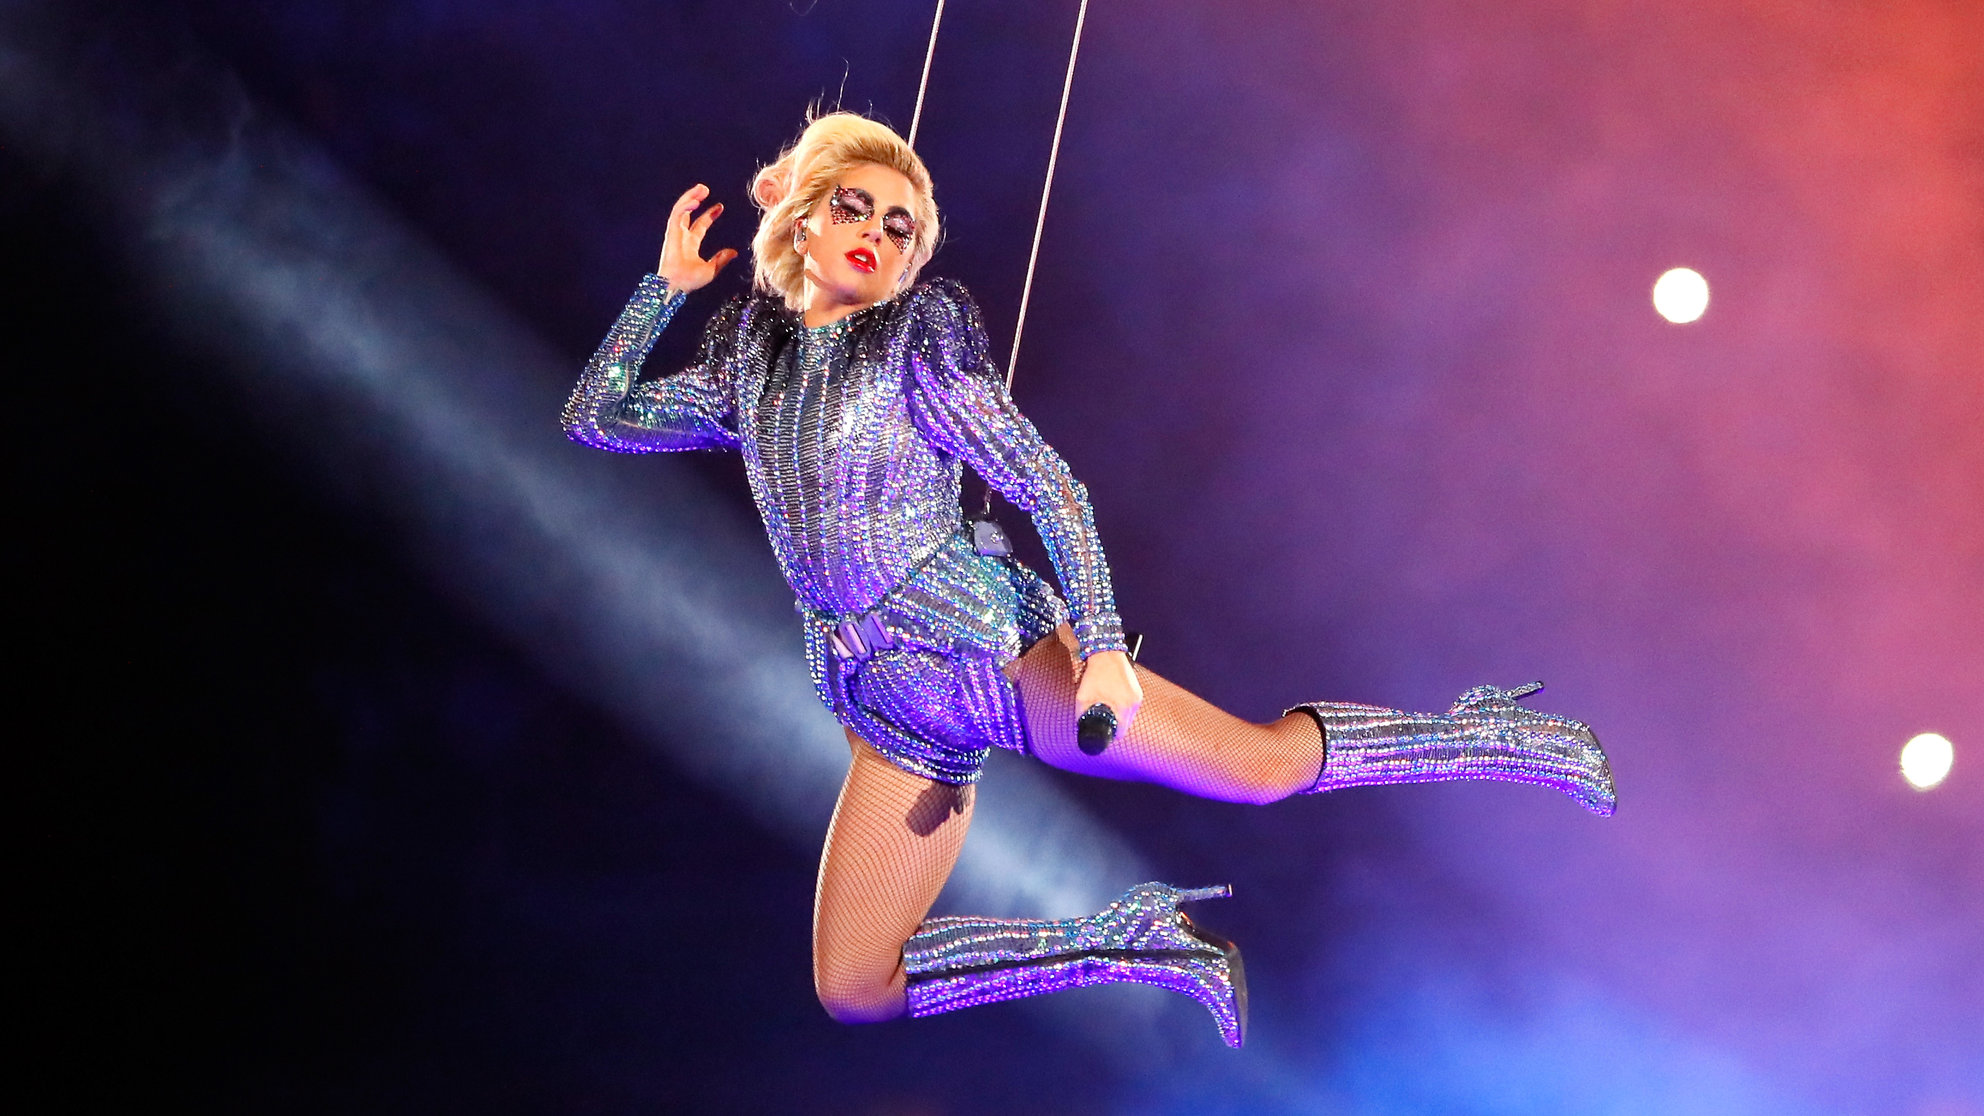 Lady Gaga Worked Out Like Crazy to Prep for Her Epic Super Bowl Performance